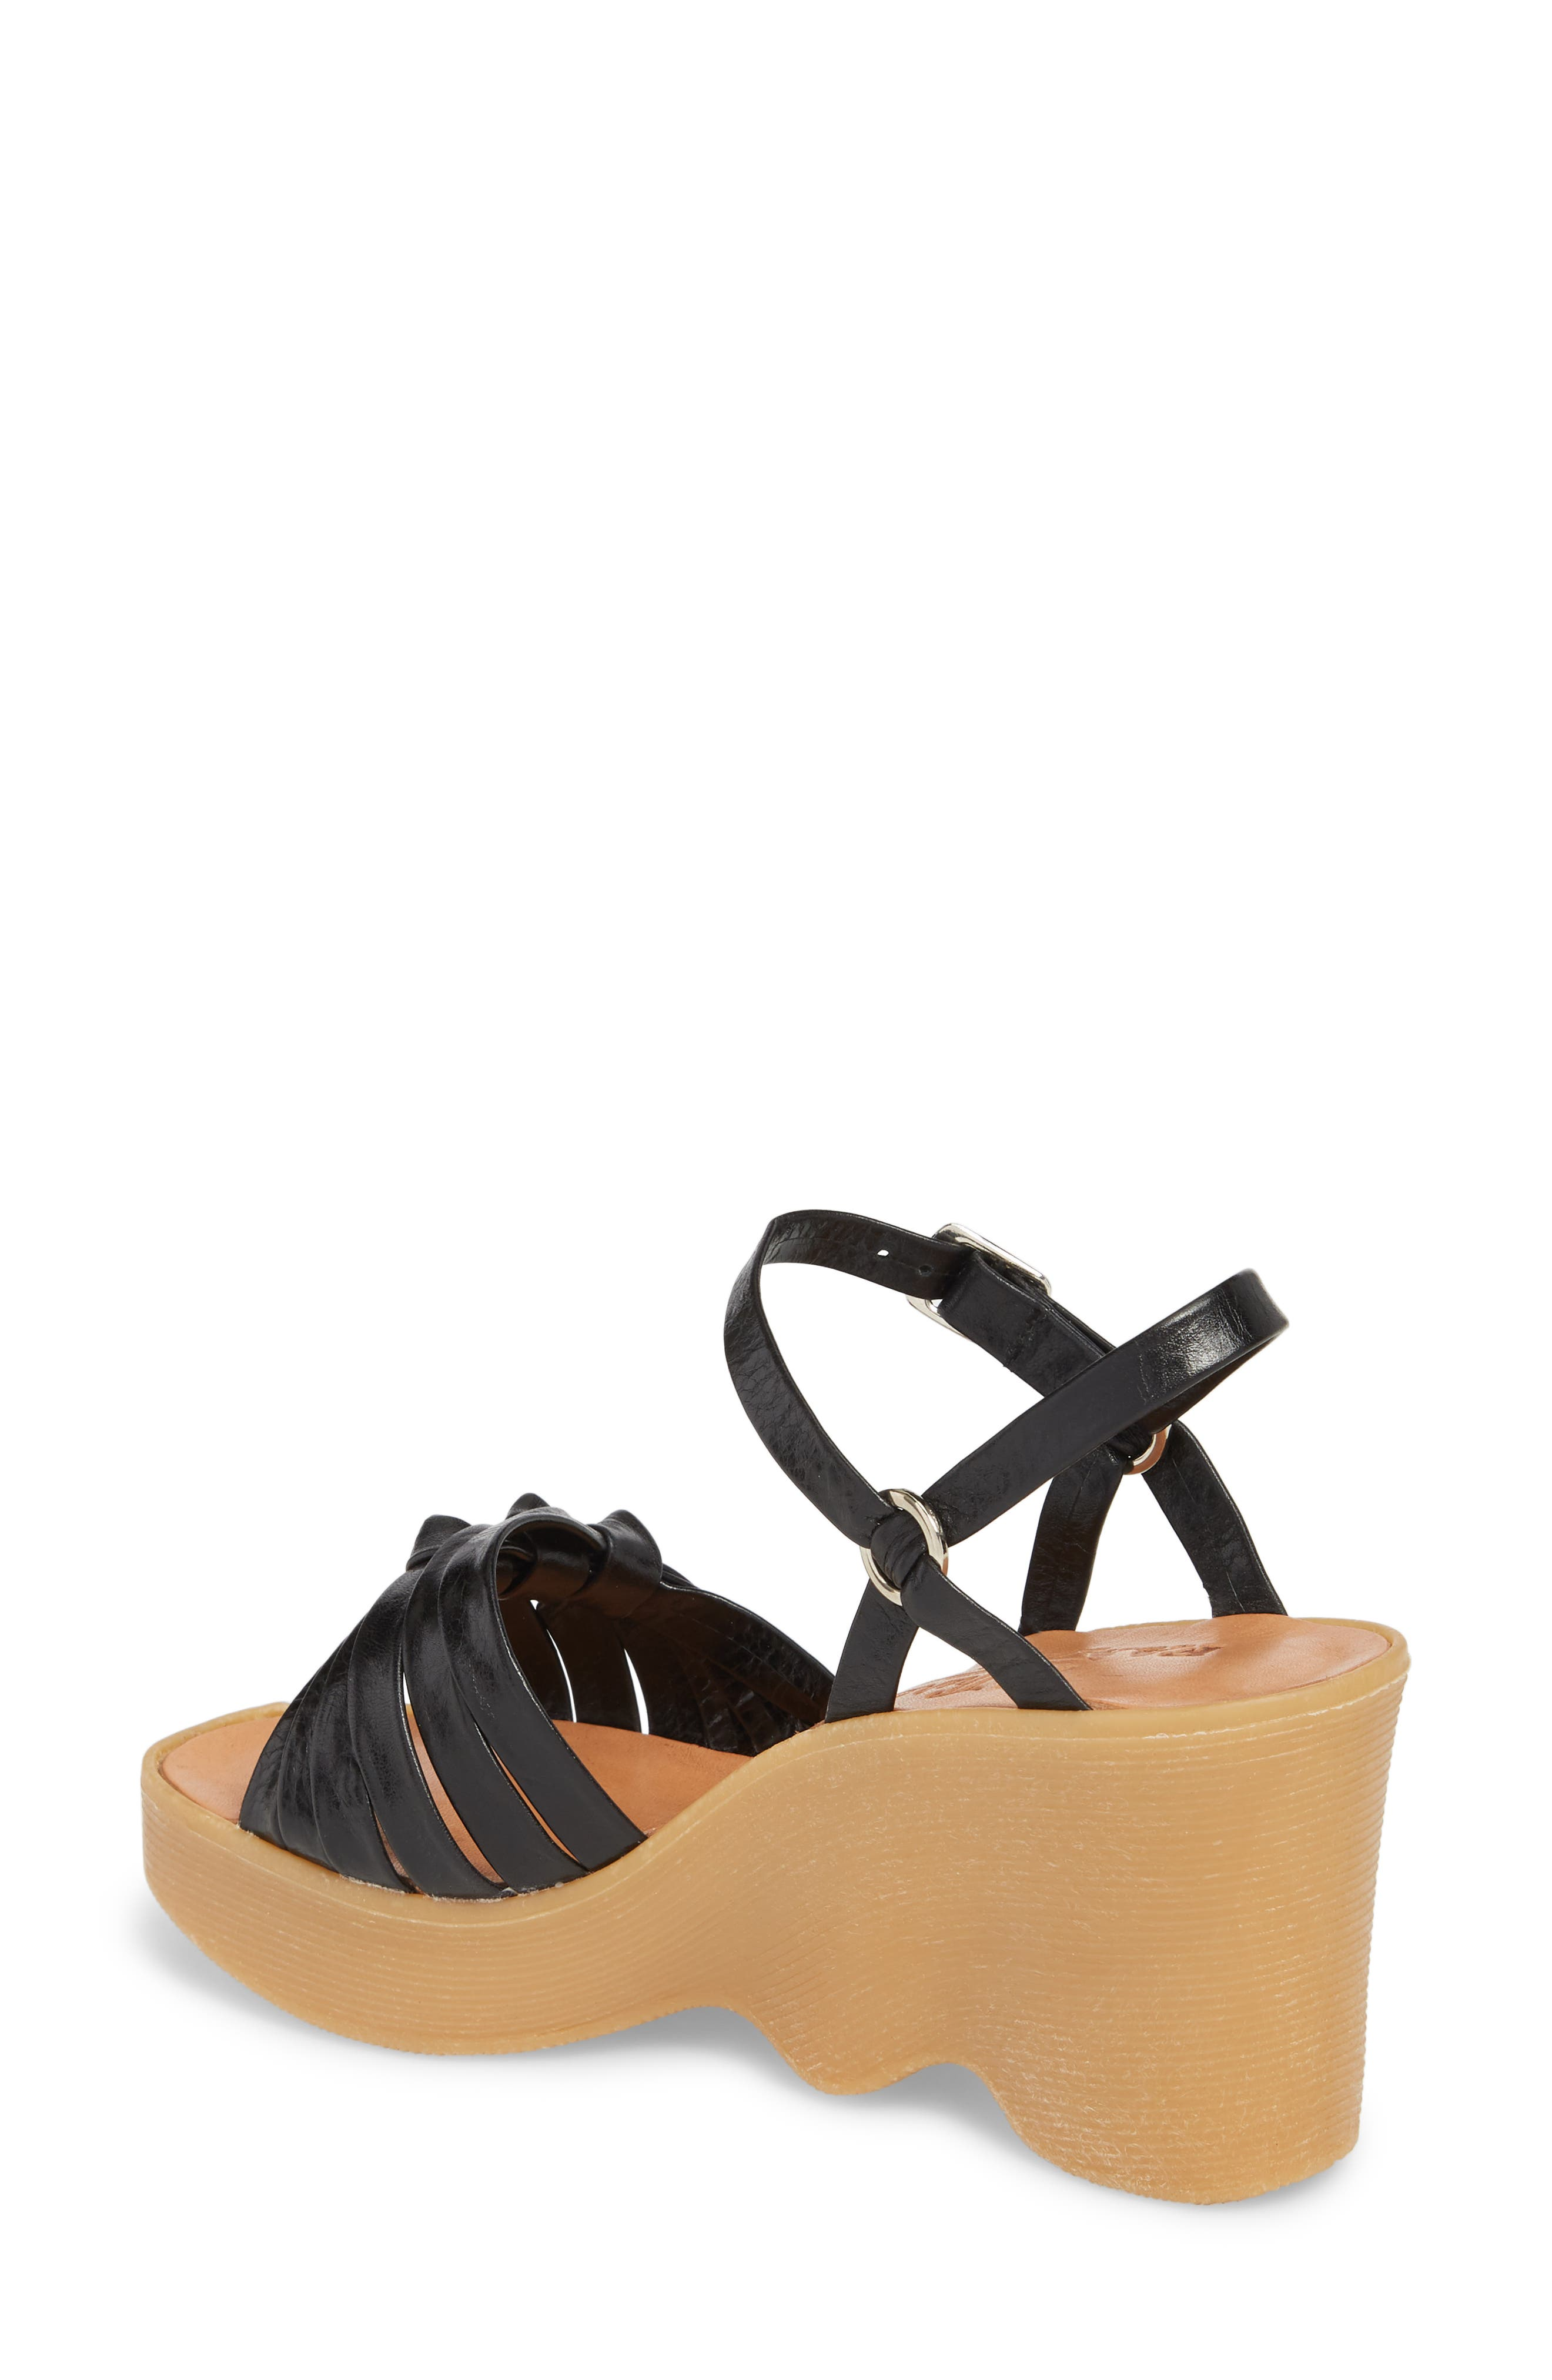 Knot So Fast Wedge Sandal,                             Alternate thumbnail 2, color,                             COAL LEATHER